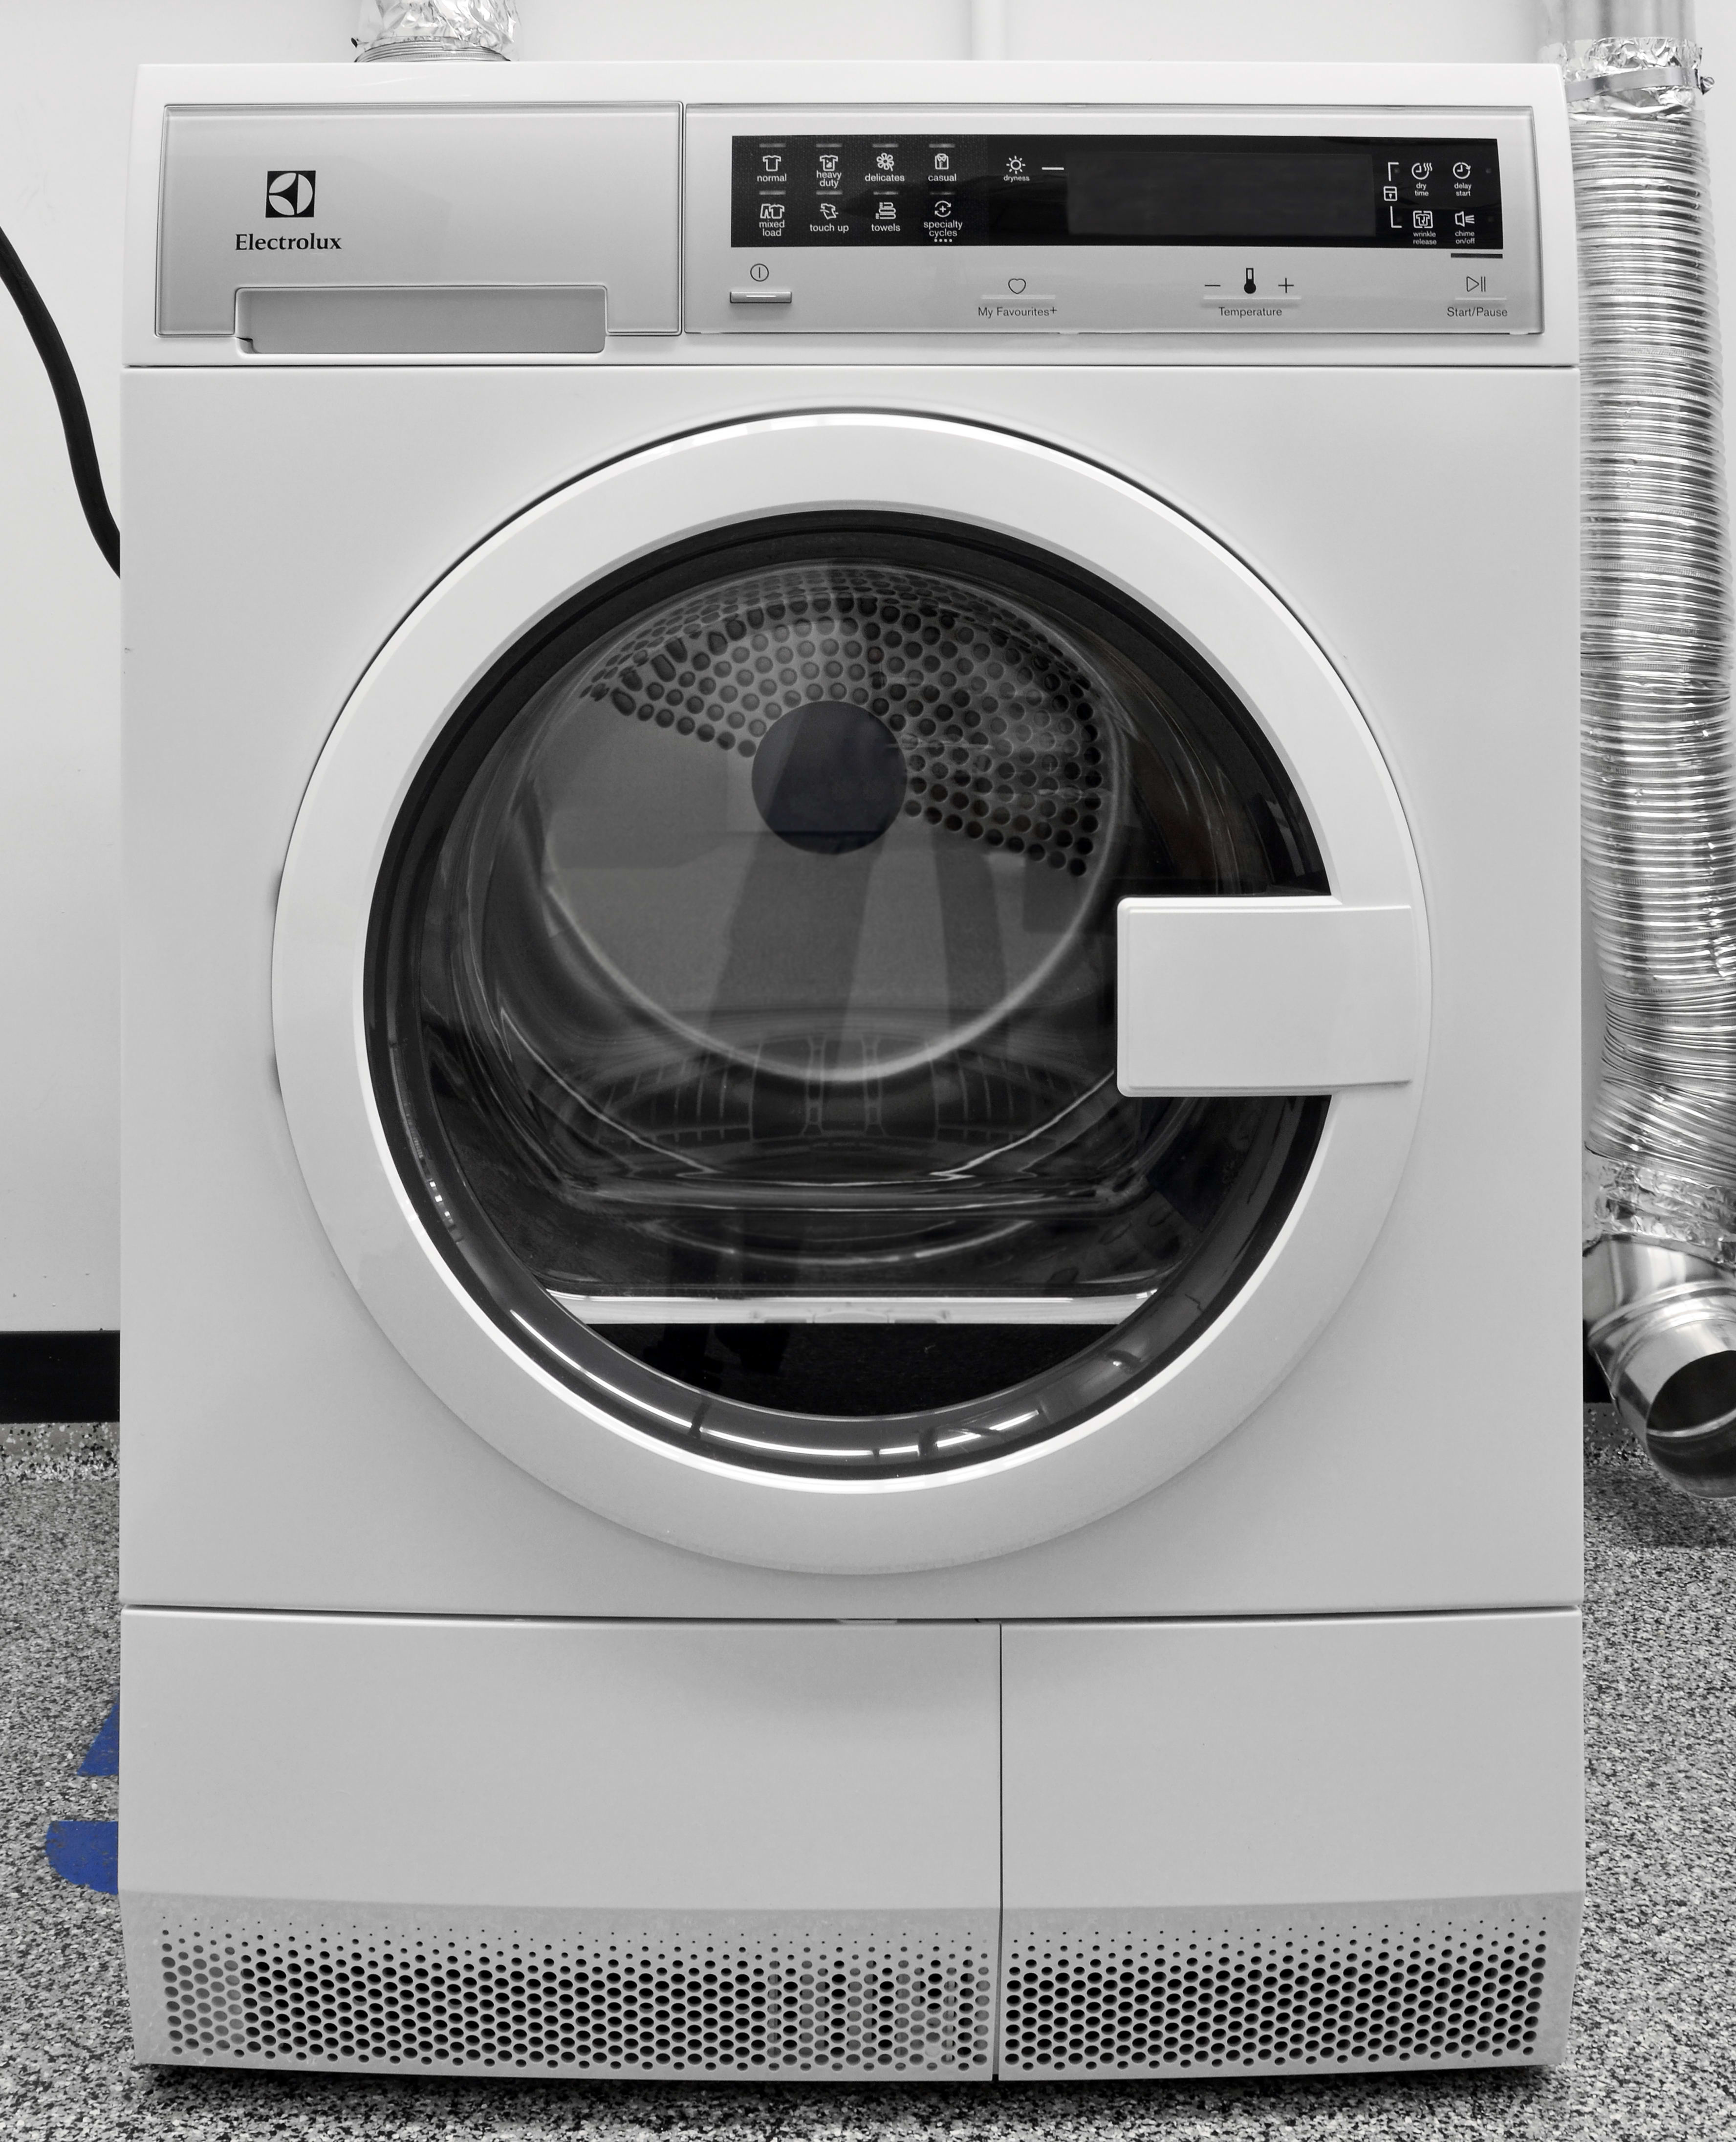 Electrolux Eied200qsw Ventless Condenser Dryer Review Frigidaire Washer And Knobs Front Load Electric Stylish Affordable The Pushes Compact Dryers In A Good Direction